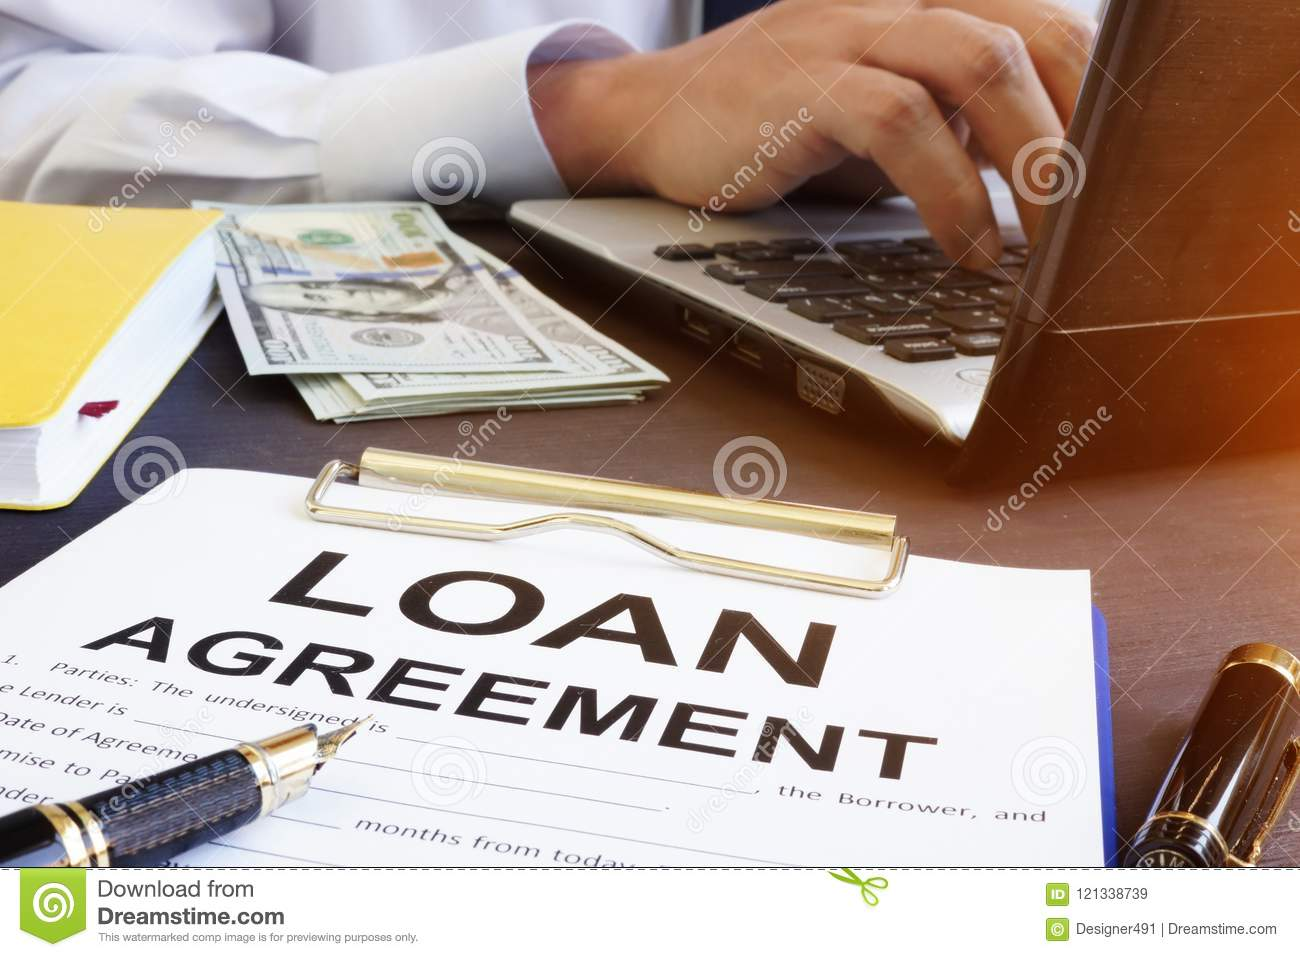 Loan agreement and money on a desk.